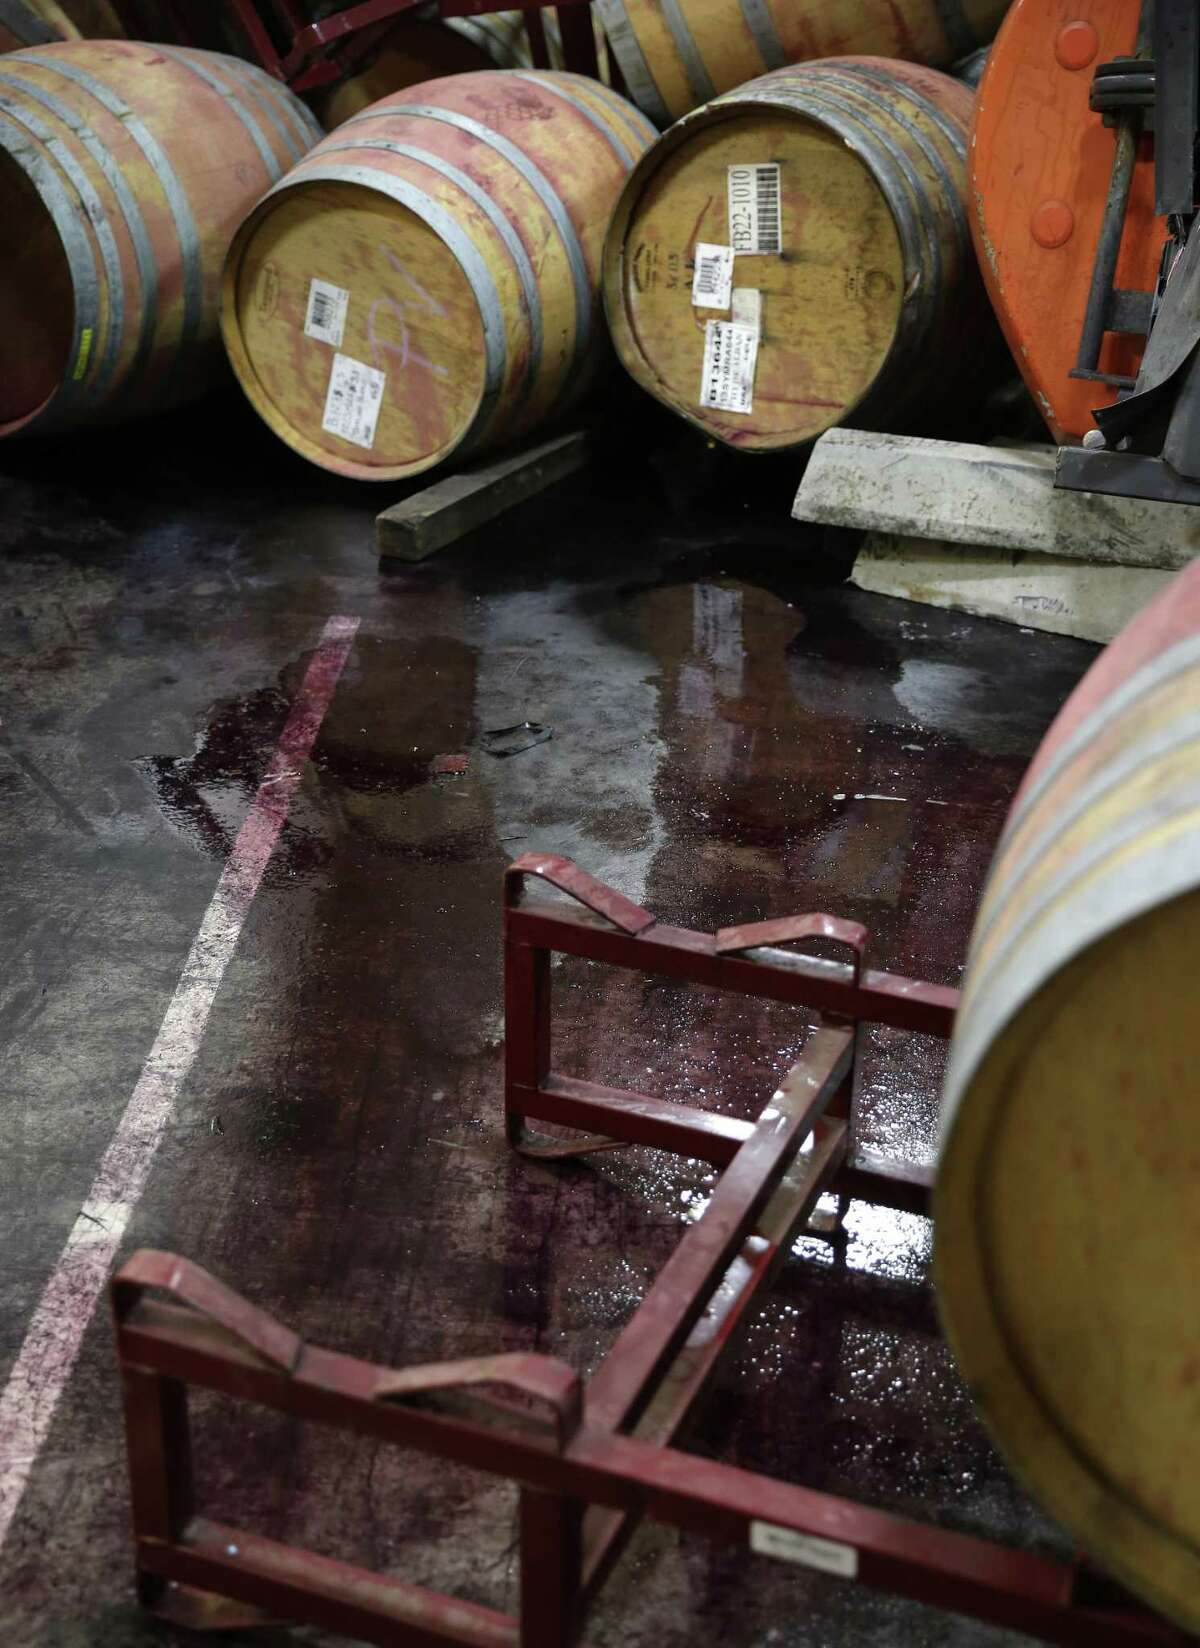 File - This Aug. 25, 2014 file photo shows wine leaking from some of the hundreds of earthquake damaged wine barrels at the Kieu Hoang Winery in Napa, Calif. Napa Valleyís seismically reinforced winery buildings generally held up to the largest earthquake to hit Northern California in a quarter-century, but the precious wine piled inside often did not. (AP Photo/Eric Risberg, file)